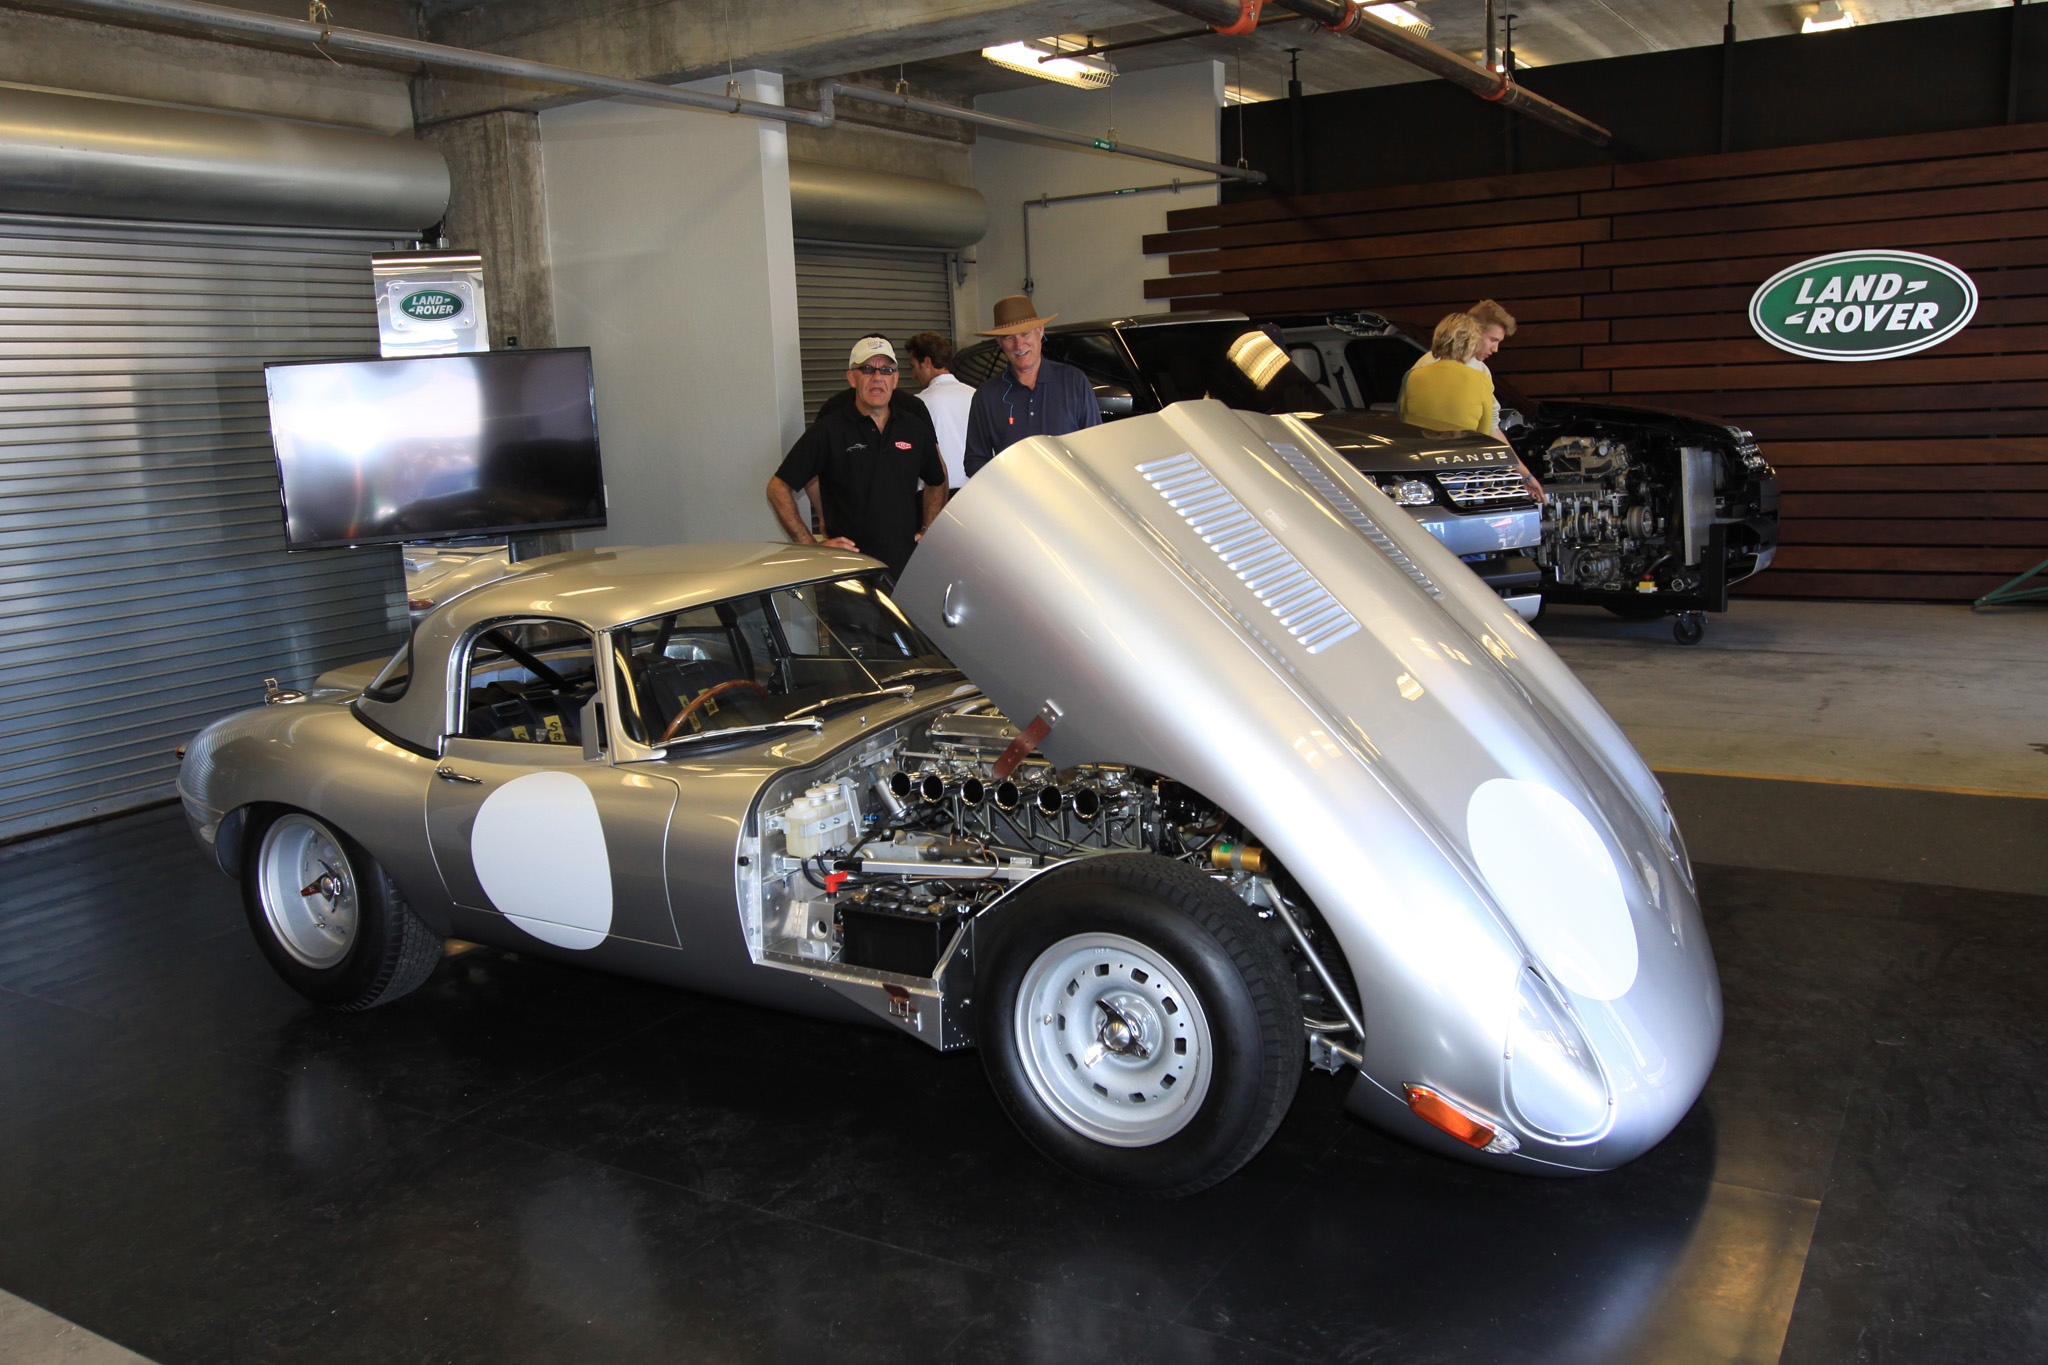 Special Operations revealed the 'New' Lightweight E-type in Monterey. They will be six customer cars each assigned one of the remaining chassis numbers originally allocated in 1963.